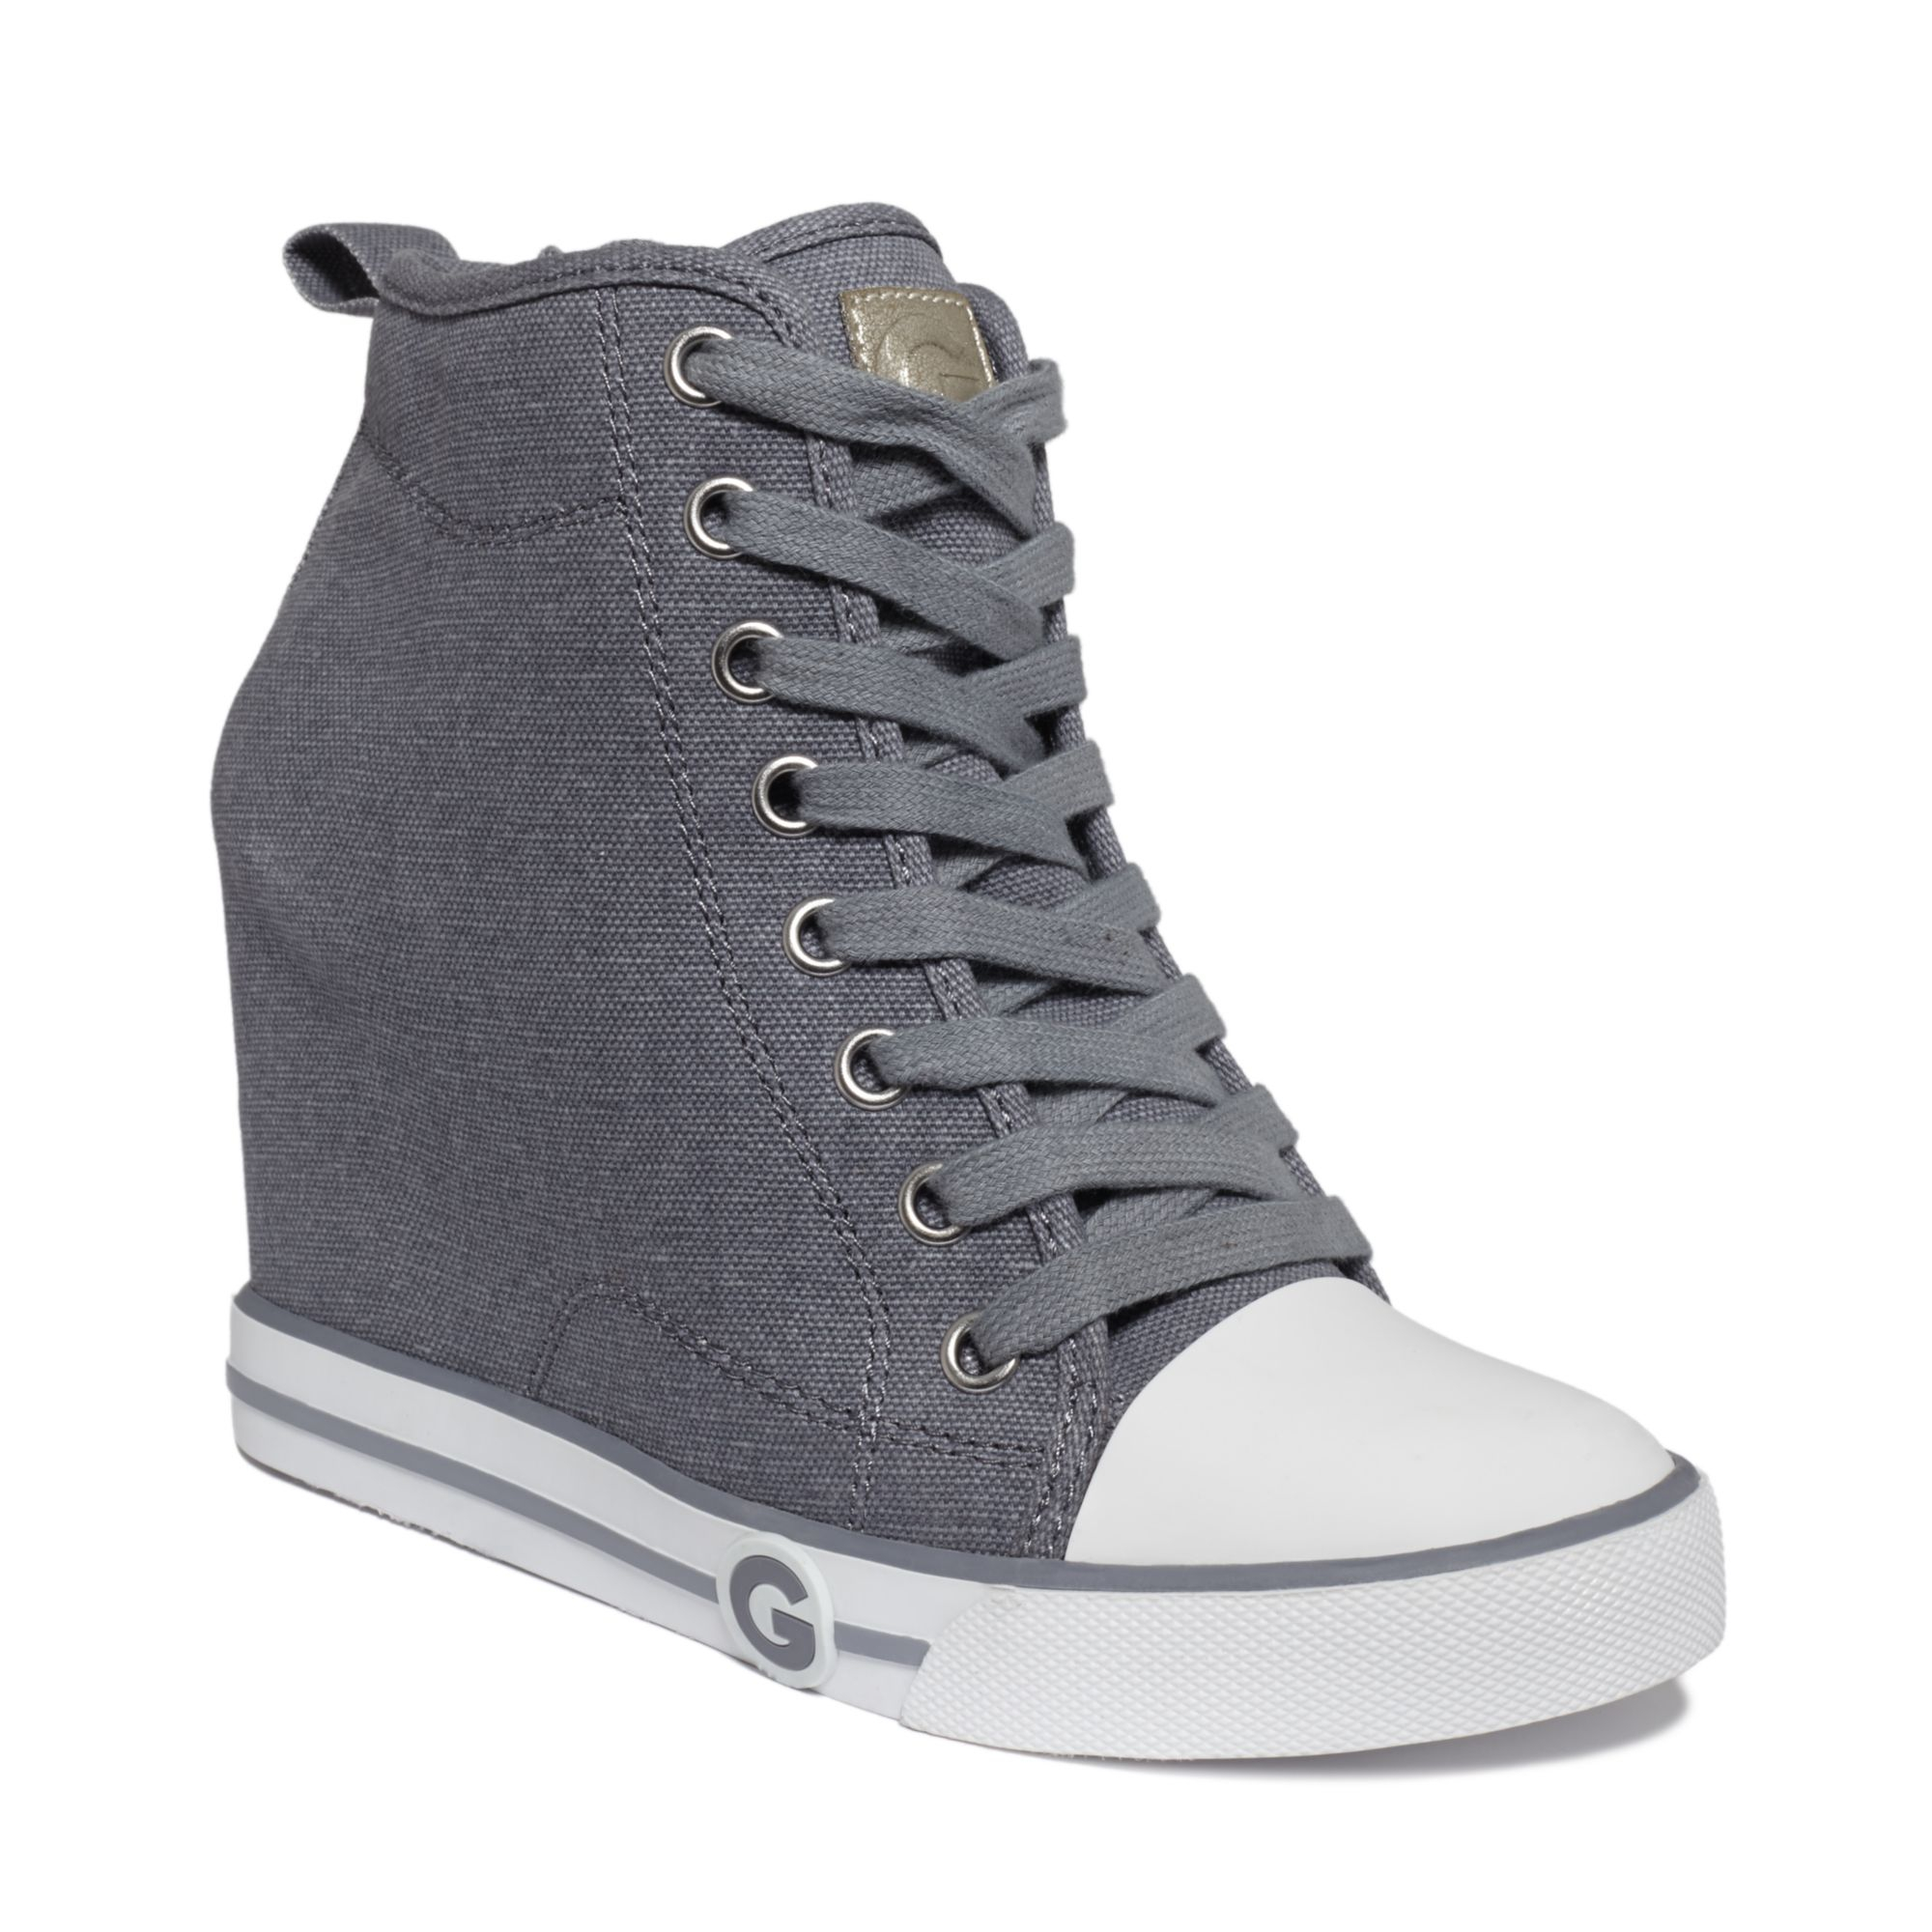 108e4b2abfc Lyst - G by Guess Womens Majestey Wedge High Top Sneakers in Gray